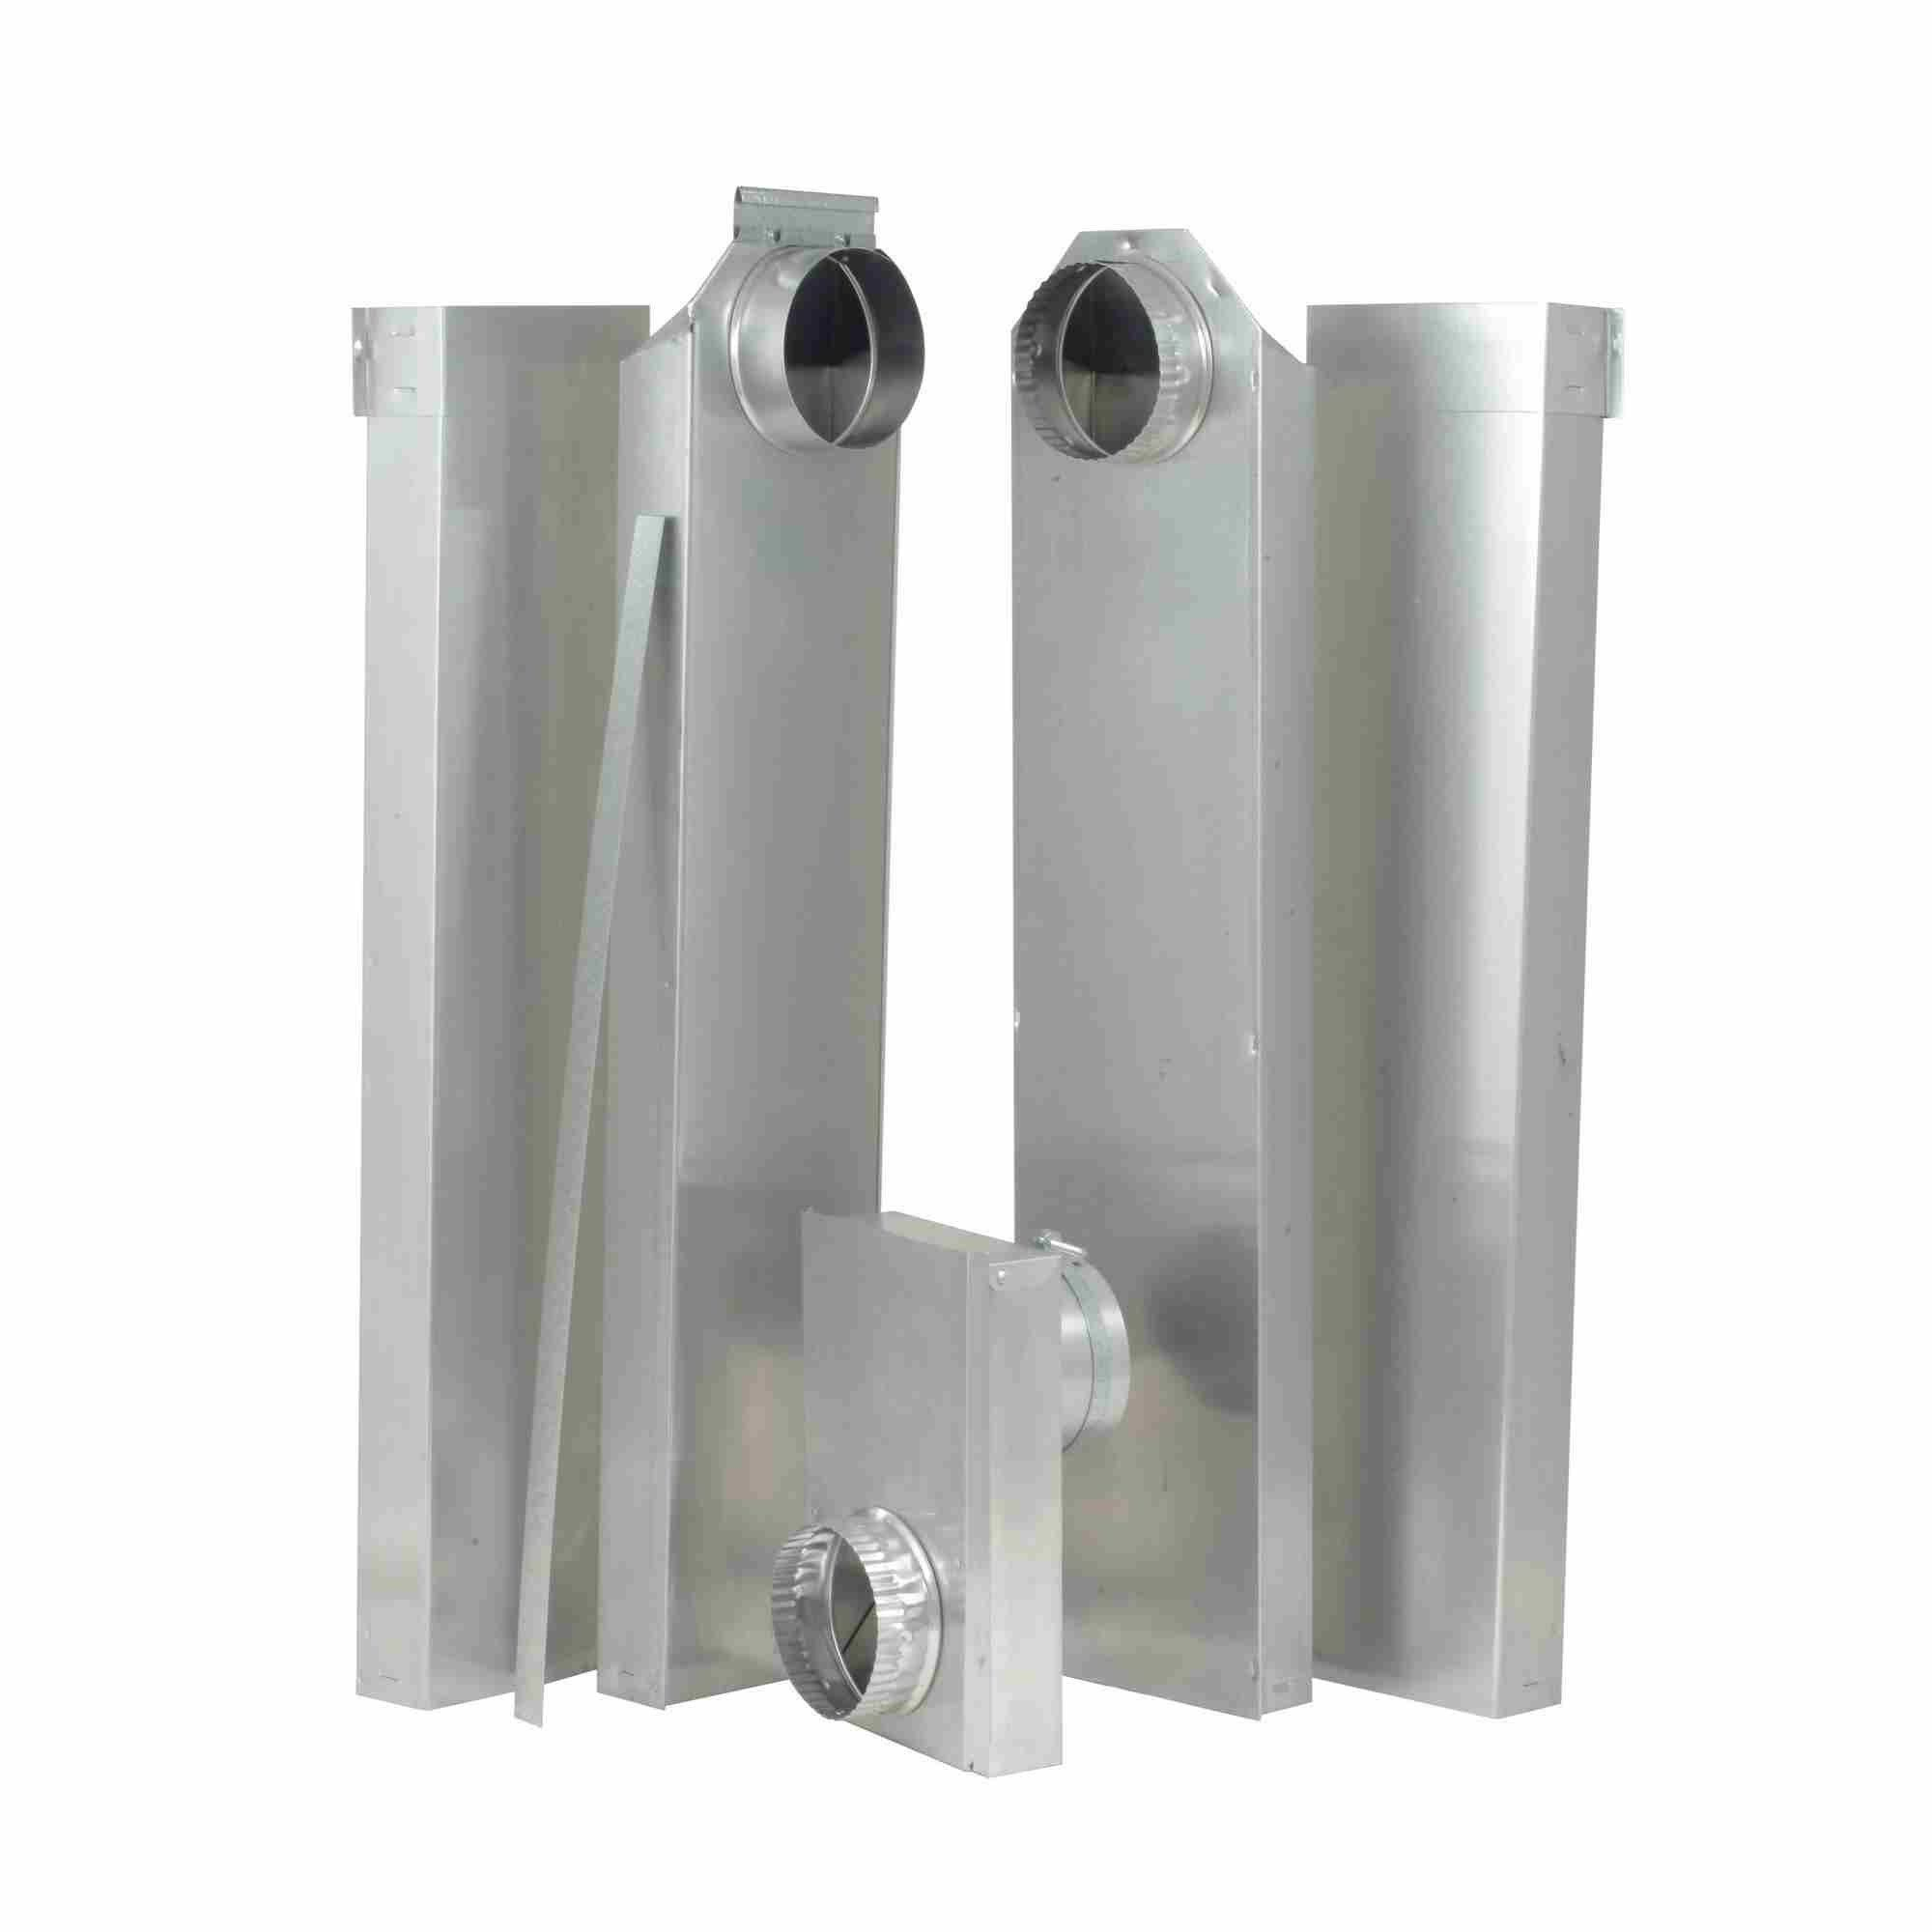 4392892 For Whirlpool Dryer Vent Periscope Kit Dryer